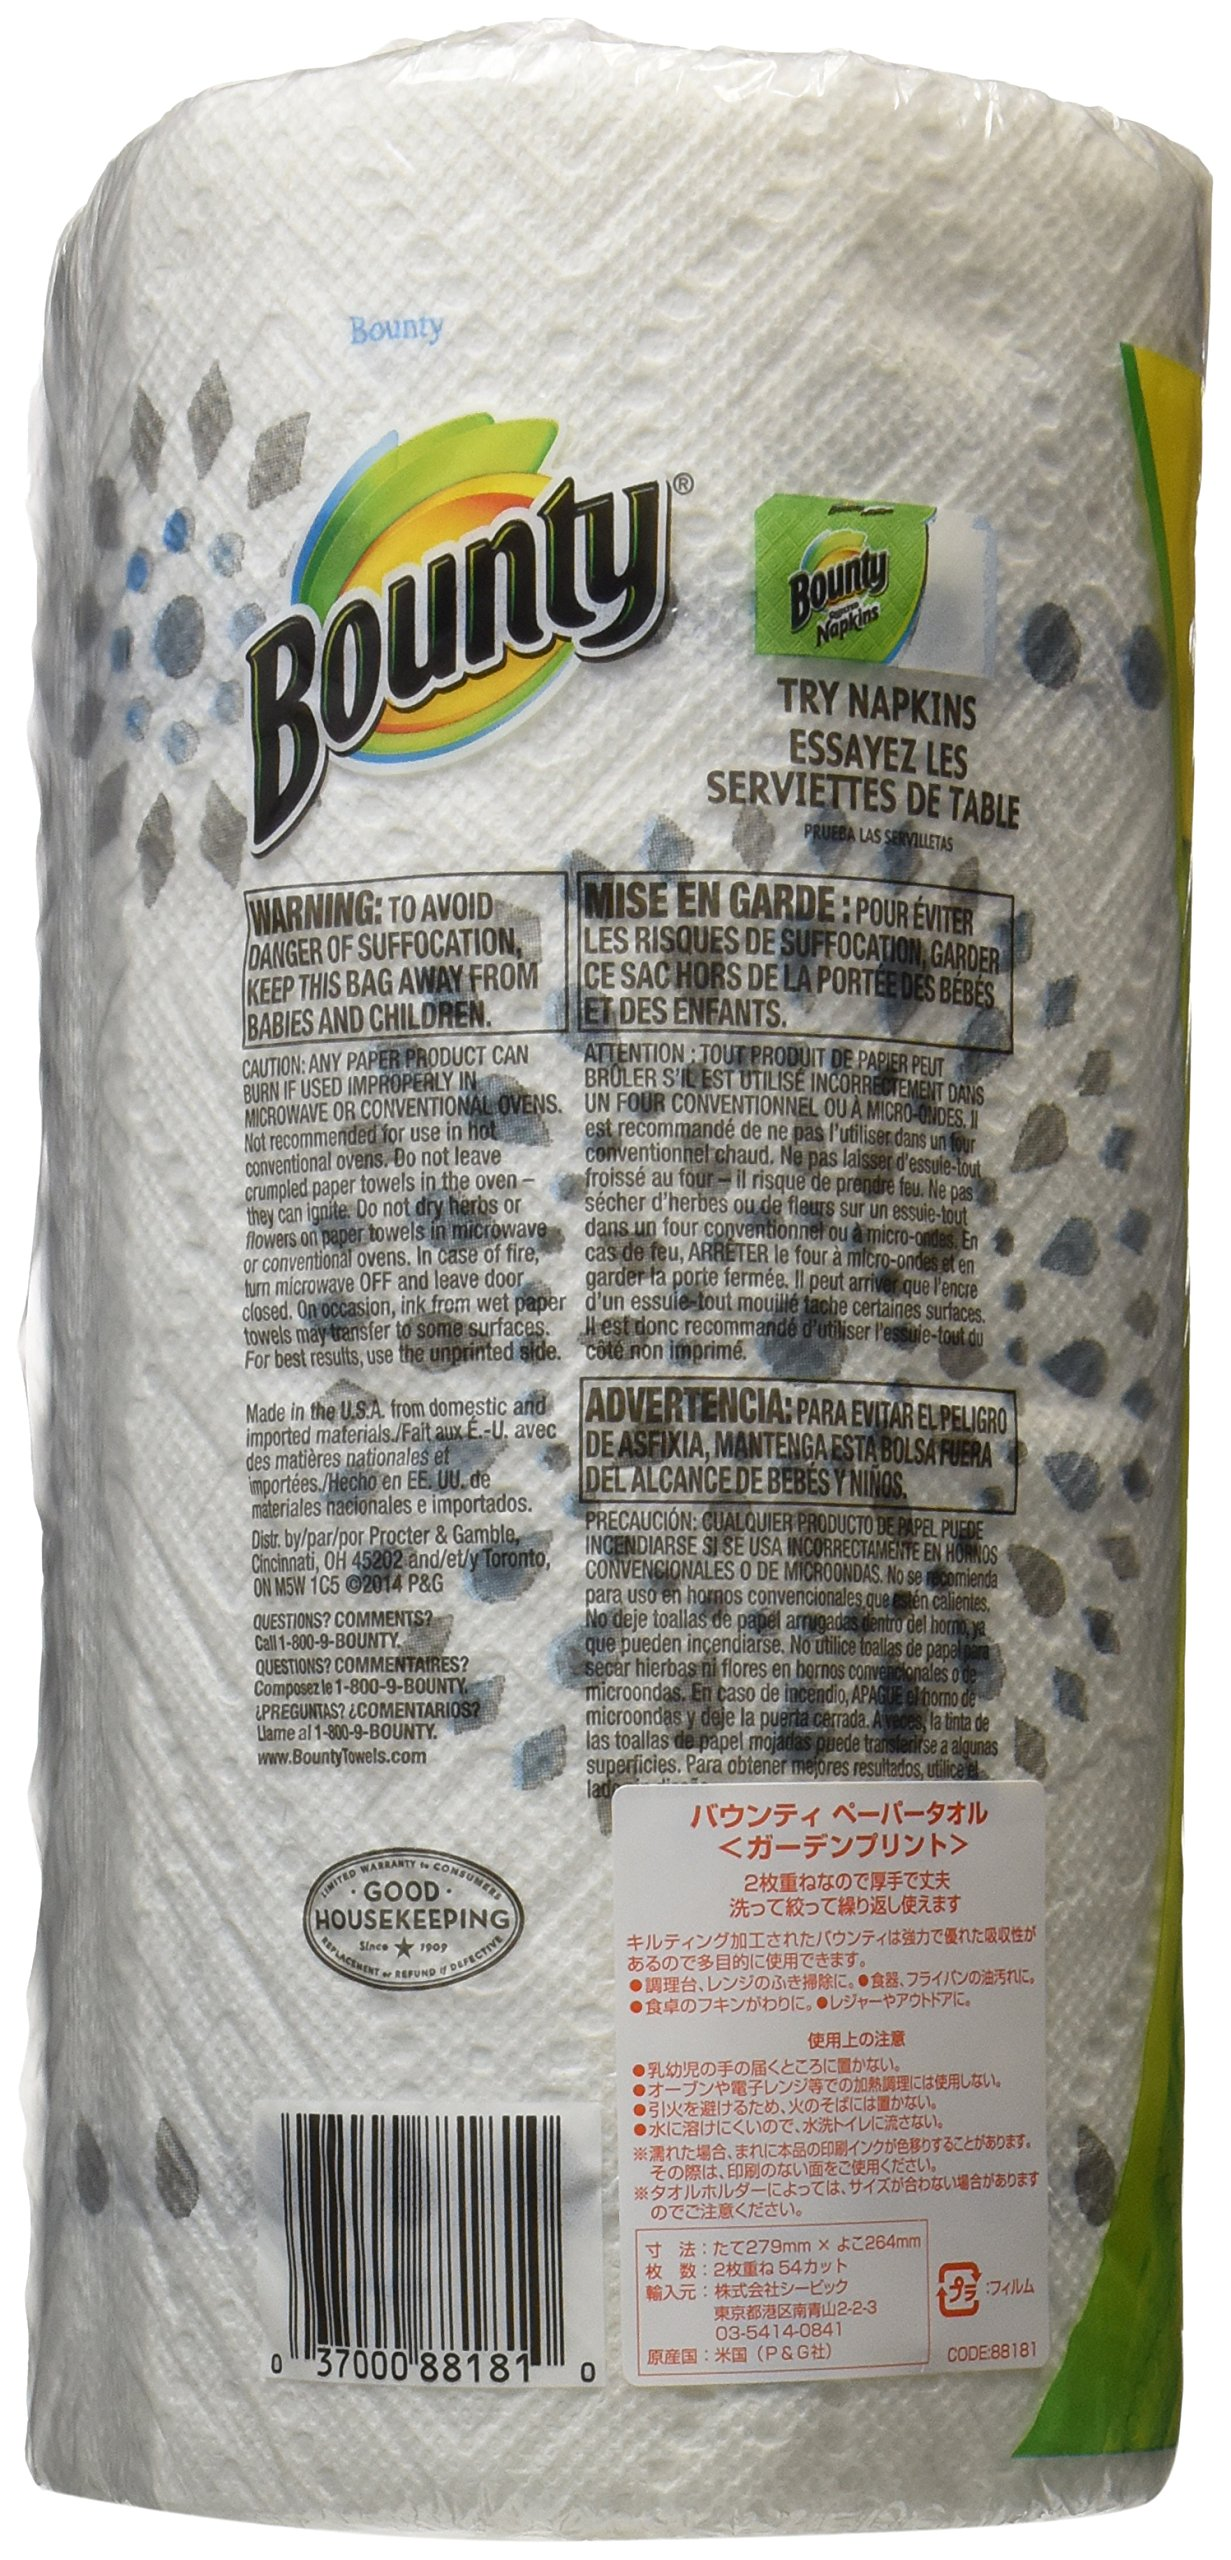 Bounty Paper Towels, Prints, 1 Big Rolls, 54 2-Ply Sheets (Pack of 24)